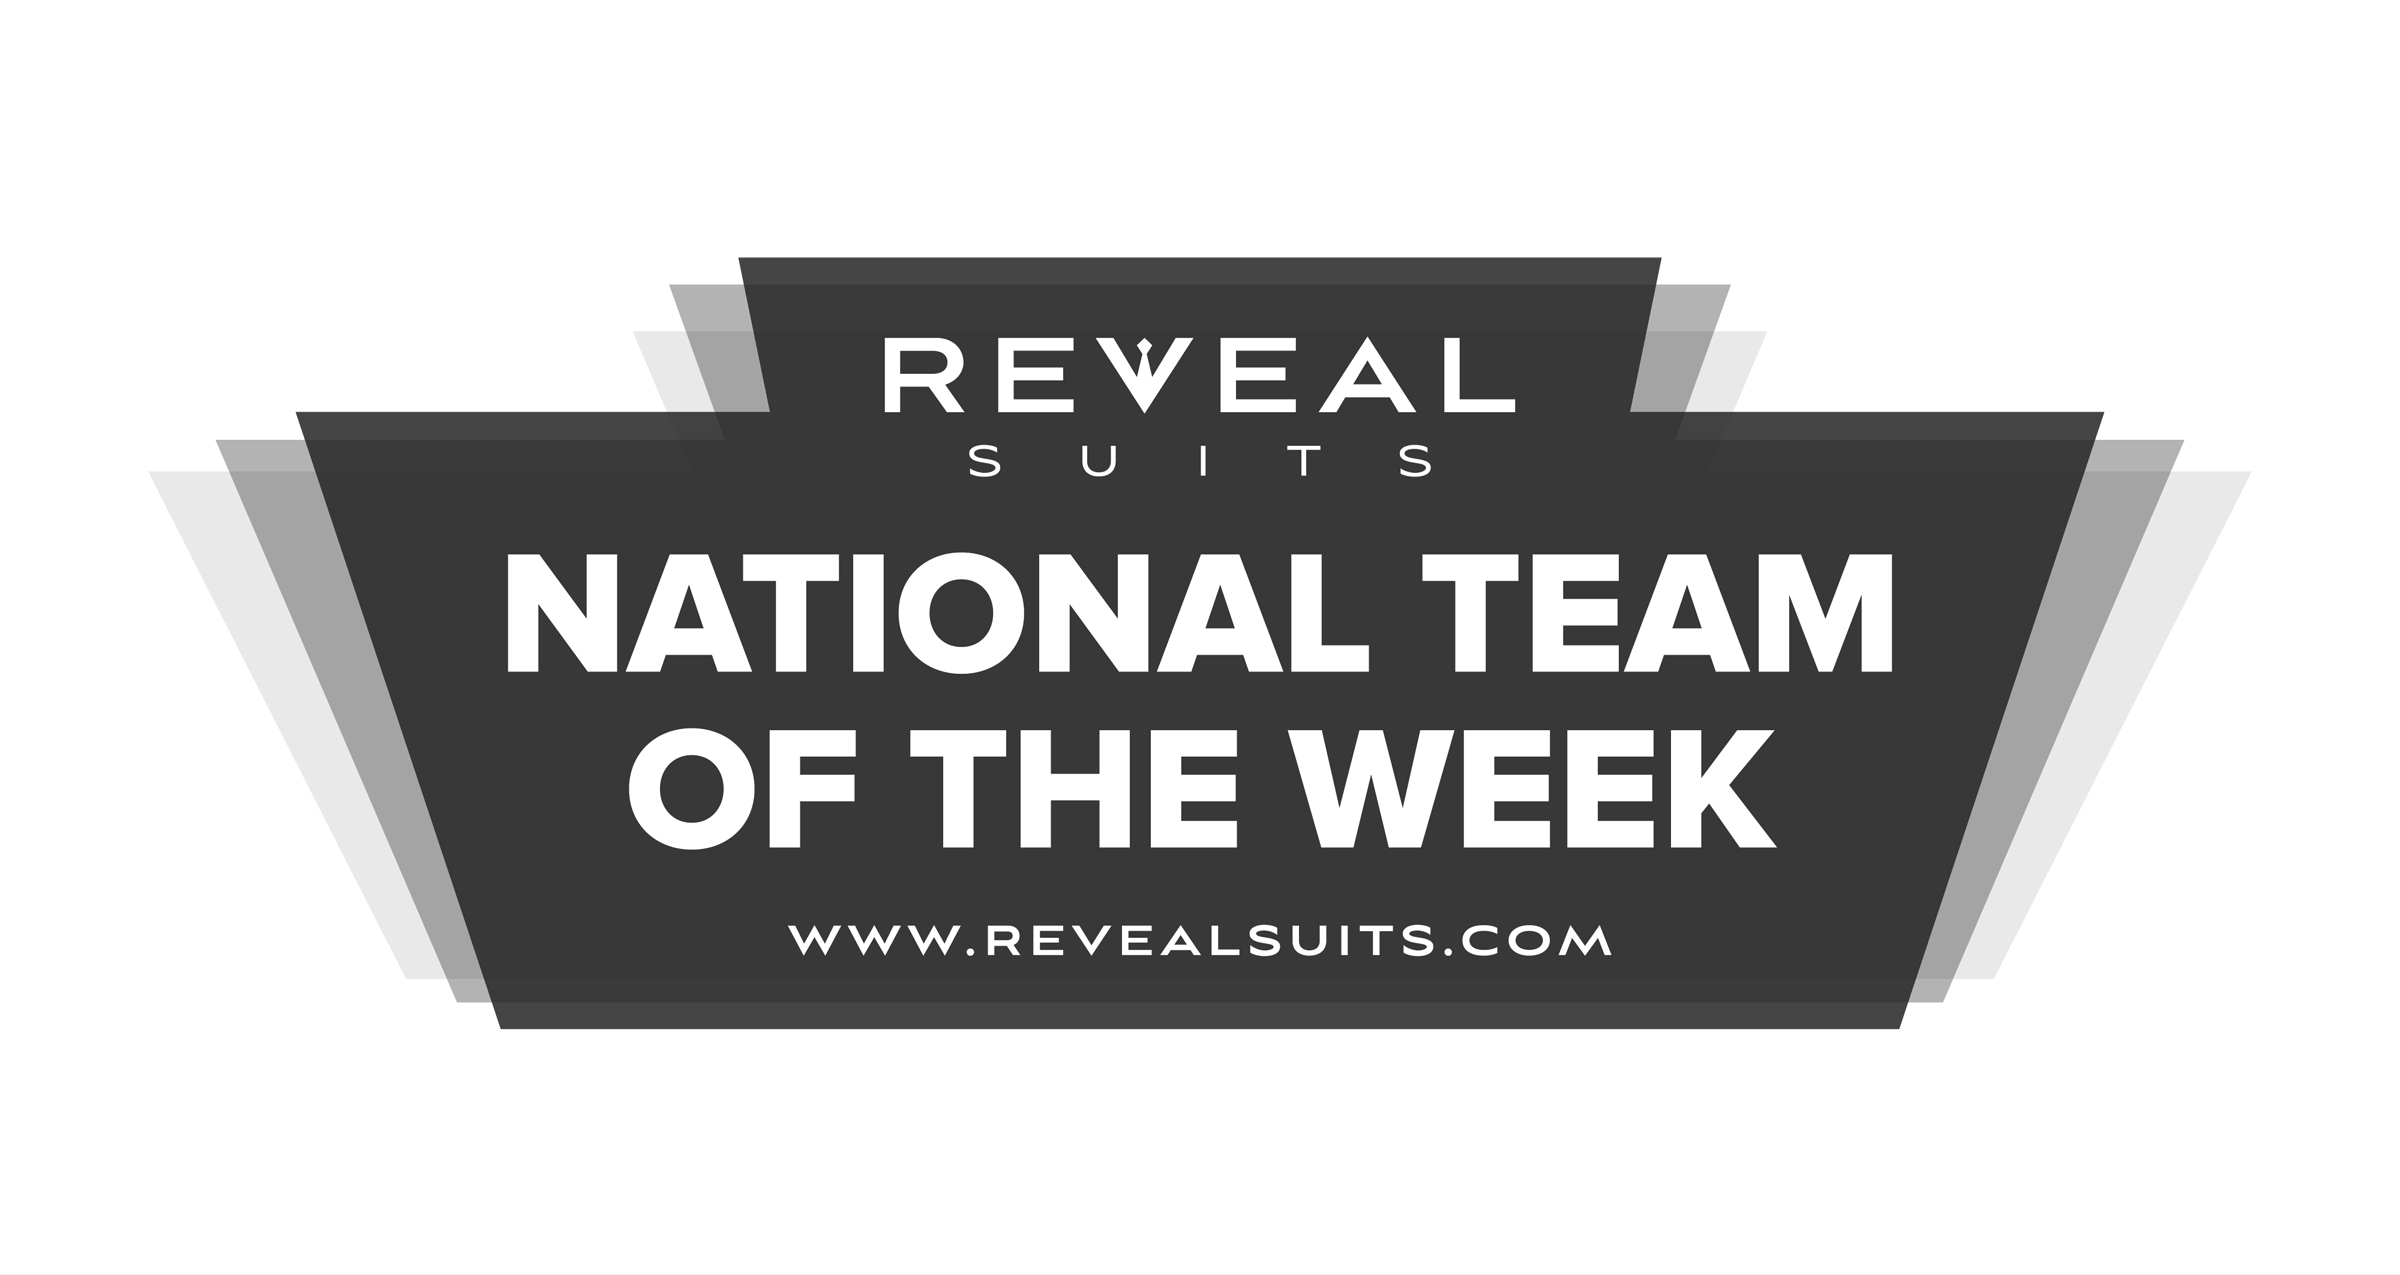 Reveal Suits National Team of the Week